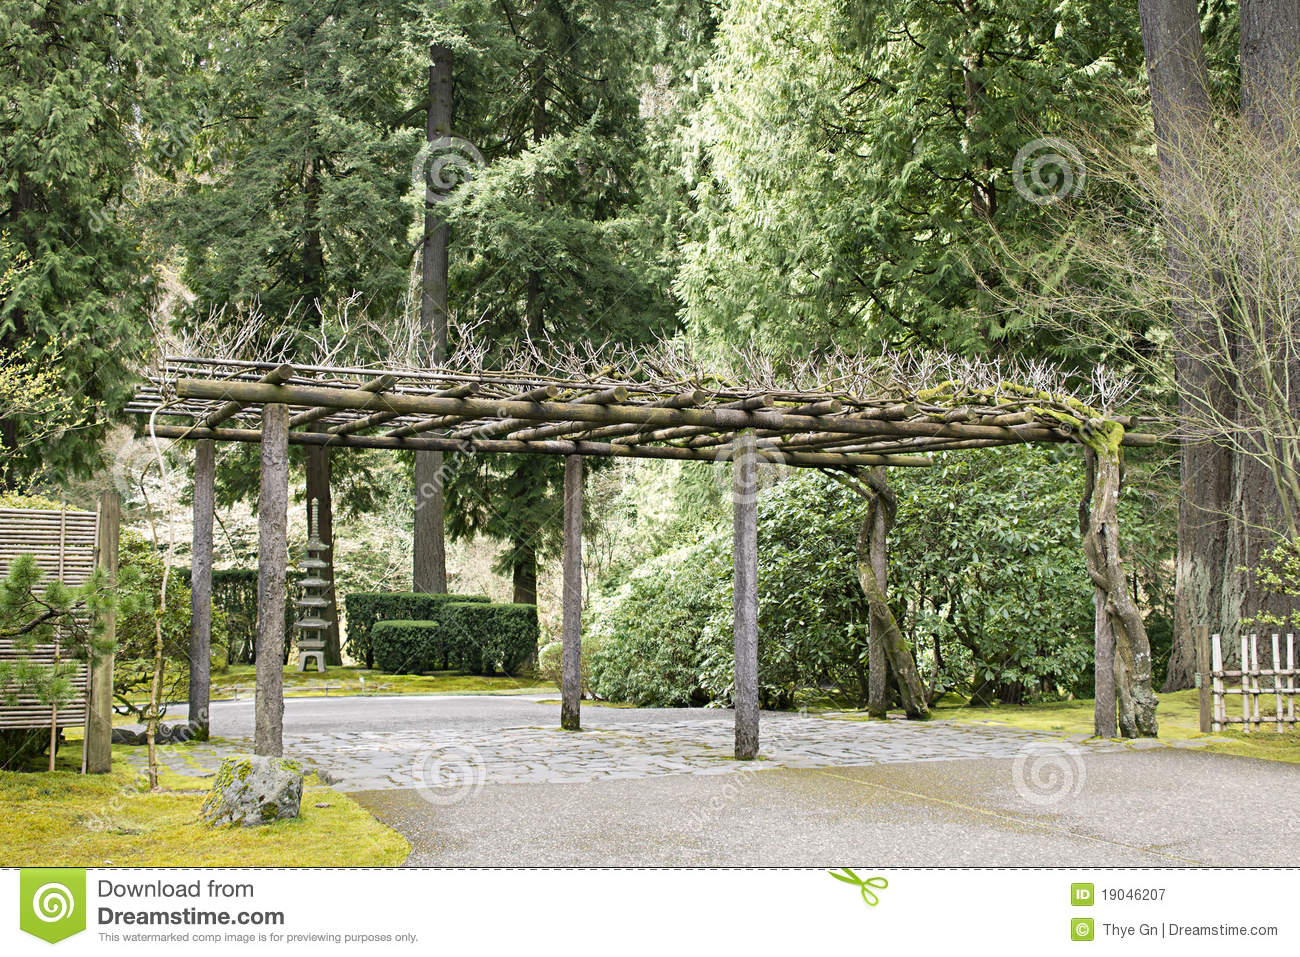 Trellis at portland japanese garden royalty free stock for Japanese garden structures wood